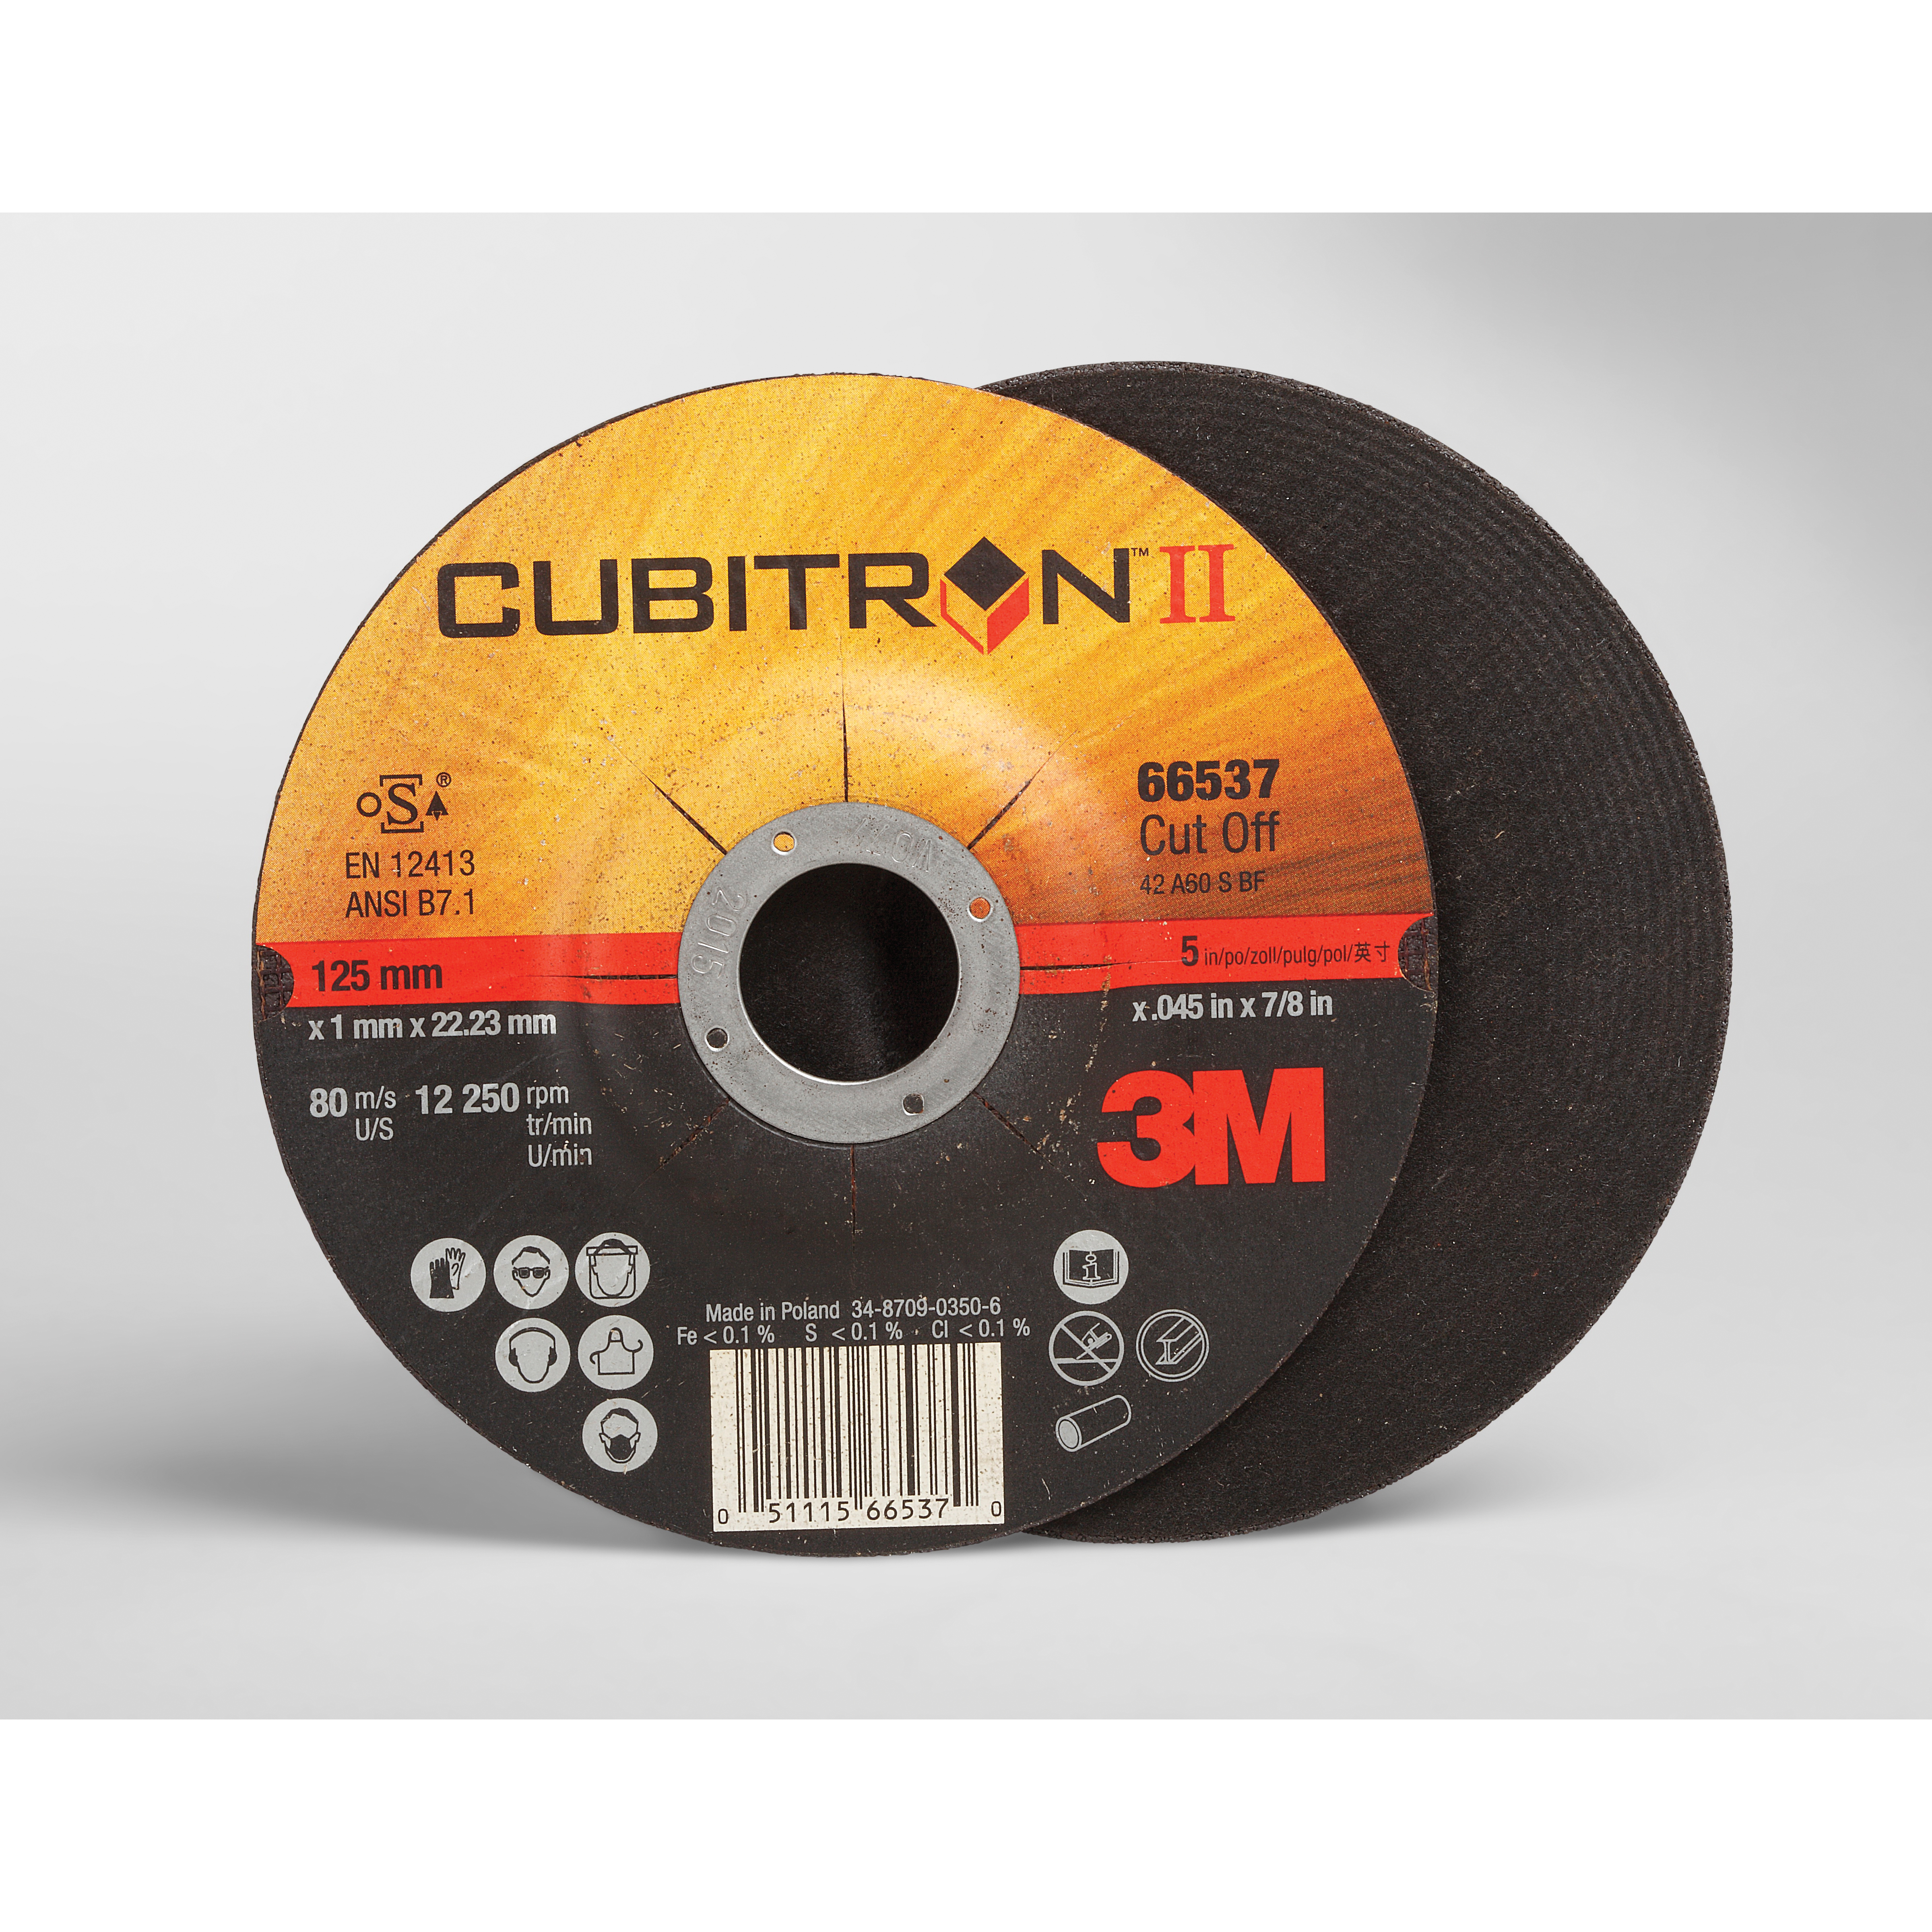 Cubitron™ II 051115-66535 COW Type 27 Cut-Off Wheel, 4-1/2 in Dia x 1/8 in THK, 7/8 in Center Hole, 36 Grit, Precision Shaped Ceramic Abrasive